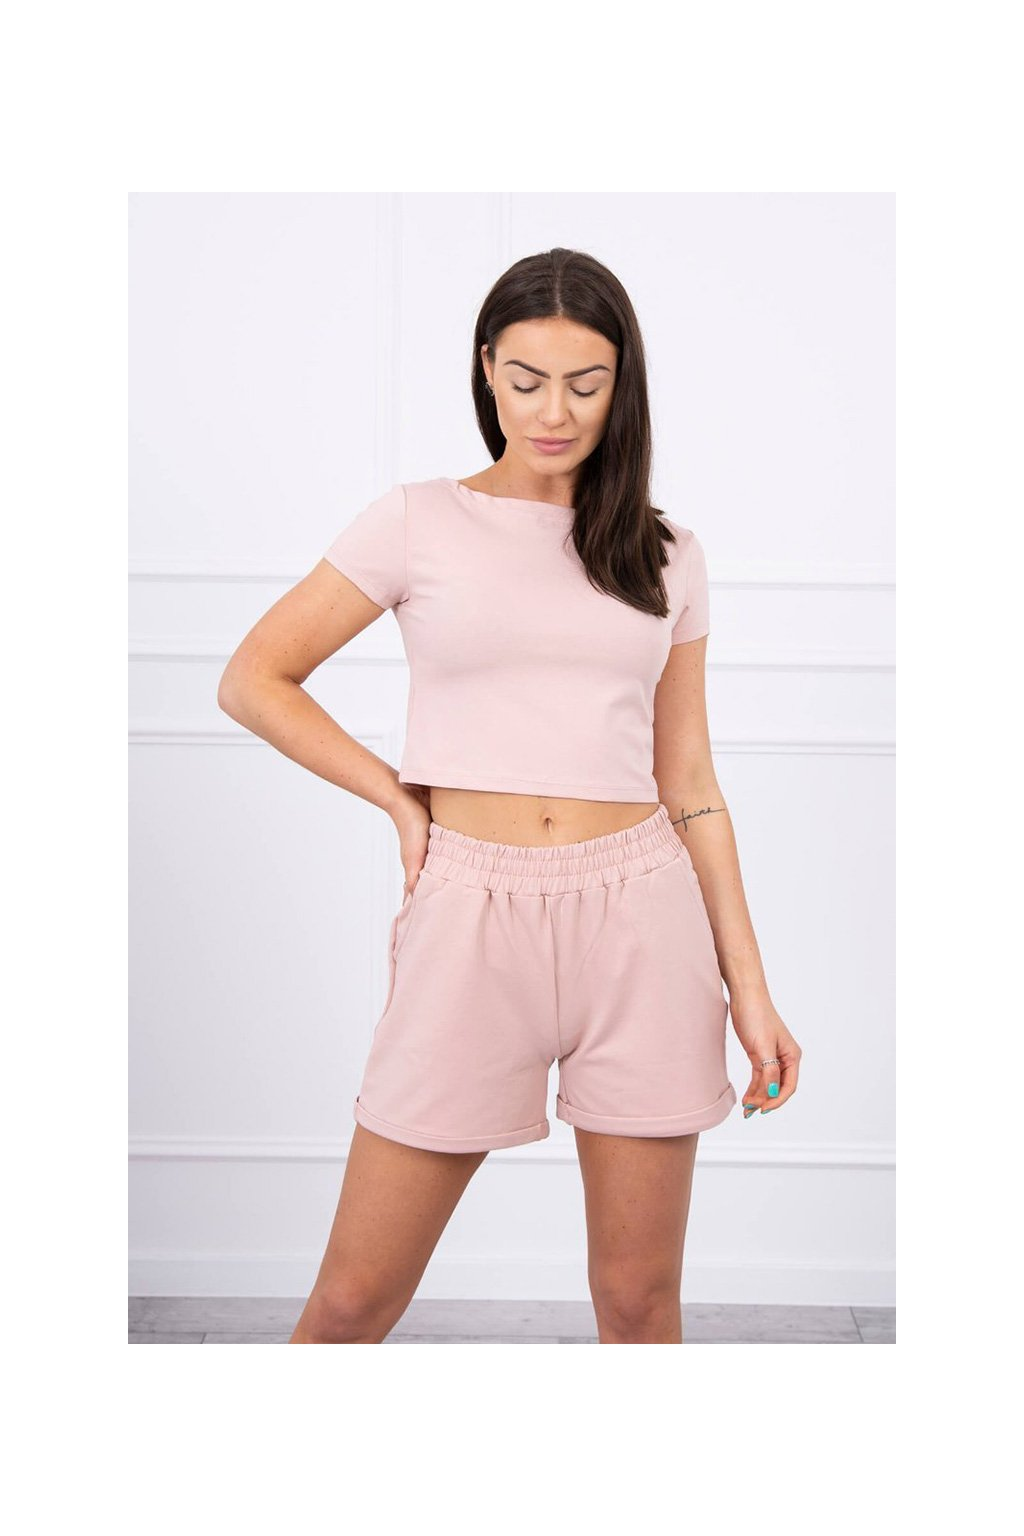 eng pl Cotton set with shorts dark powdered pink 17461 3